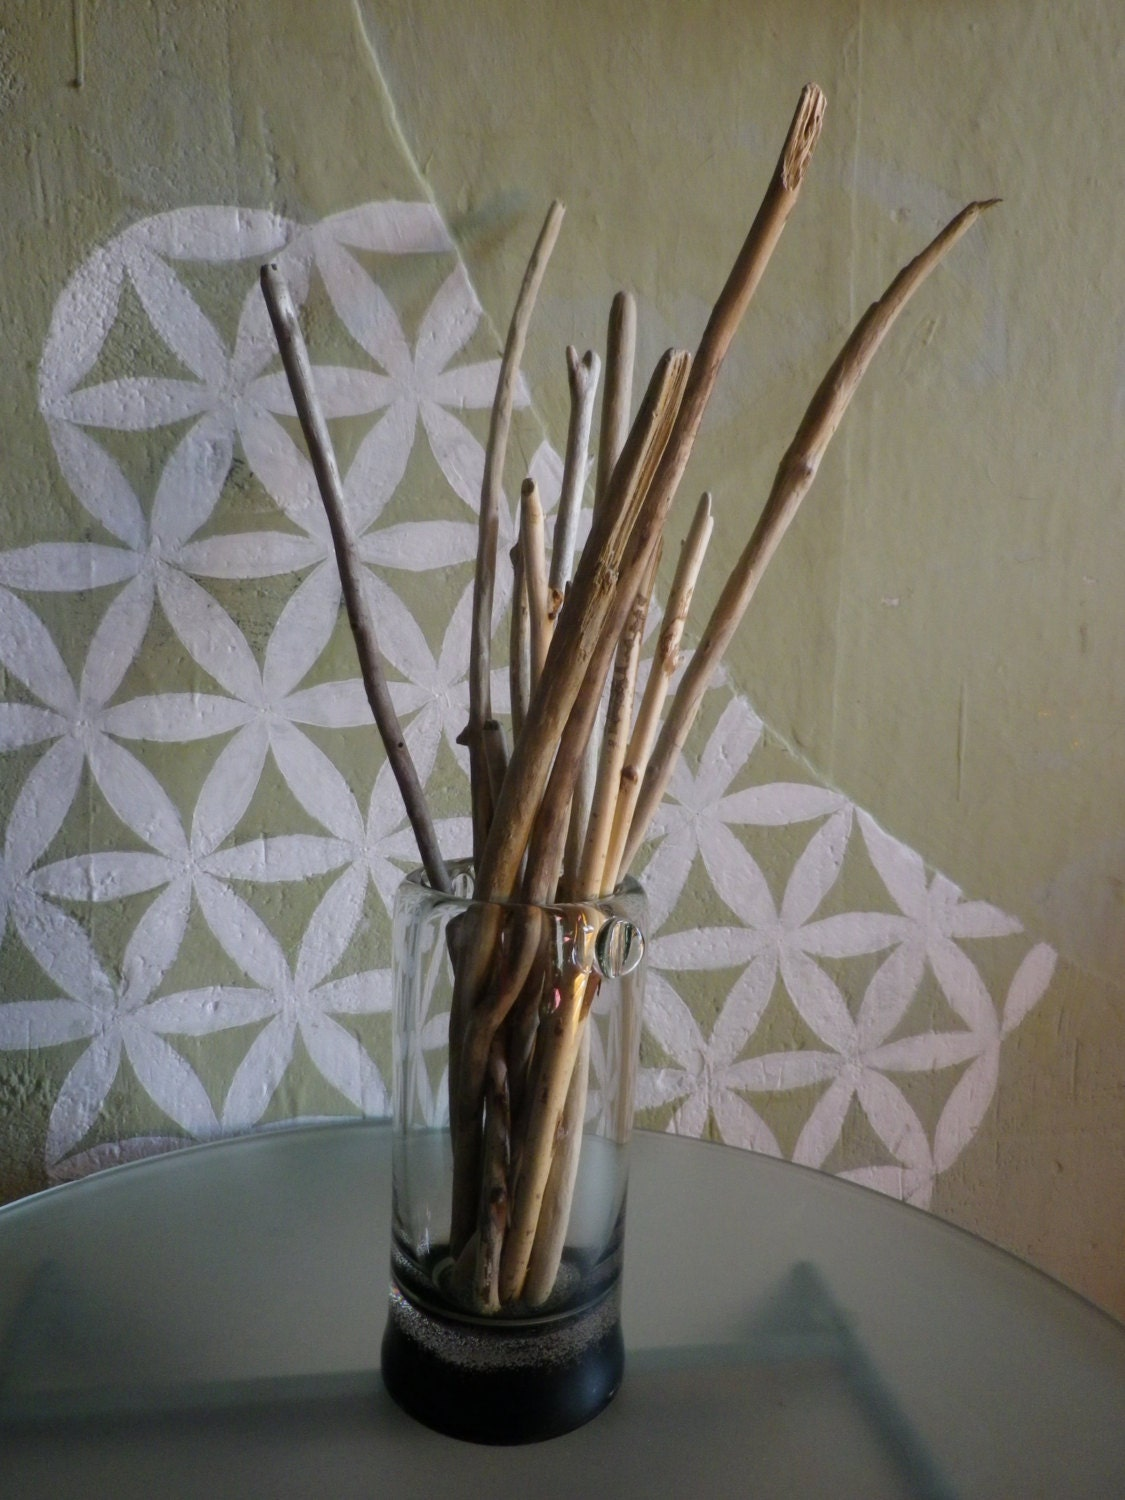 25 Pcs Decor Branches Wood Branches Driftwood Vase Filler